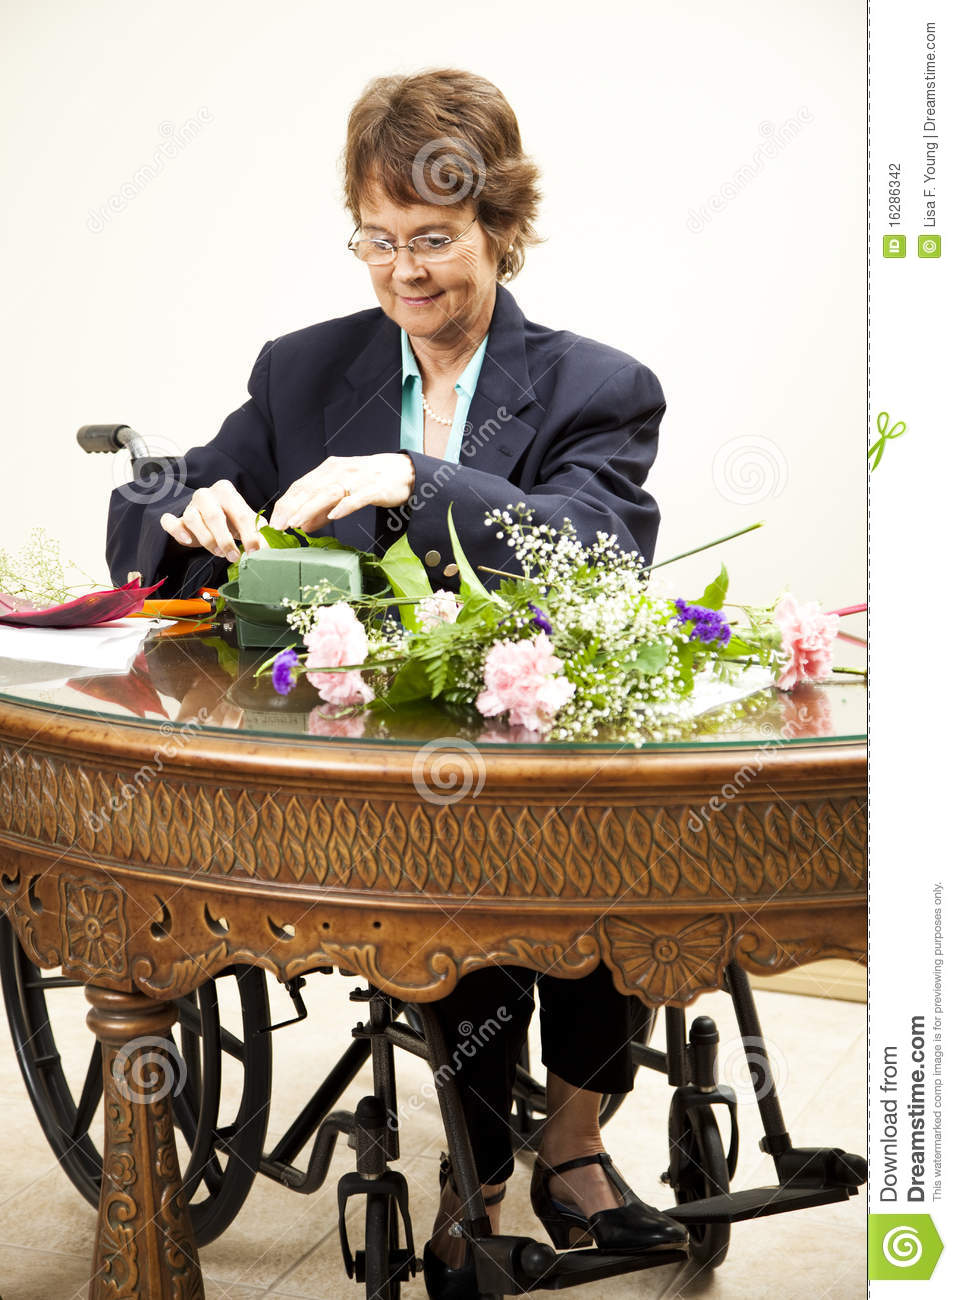 Mature woman in wheelchair making a flower arrangement.